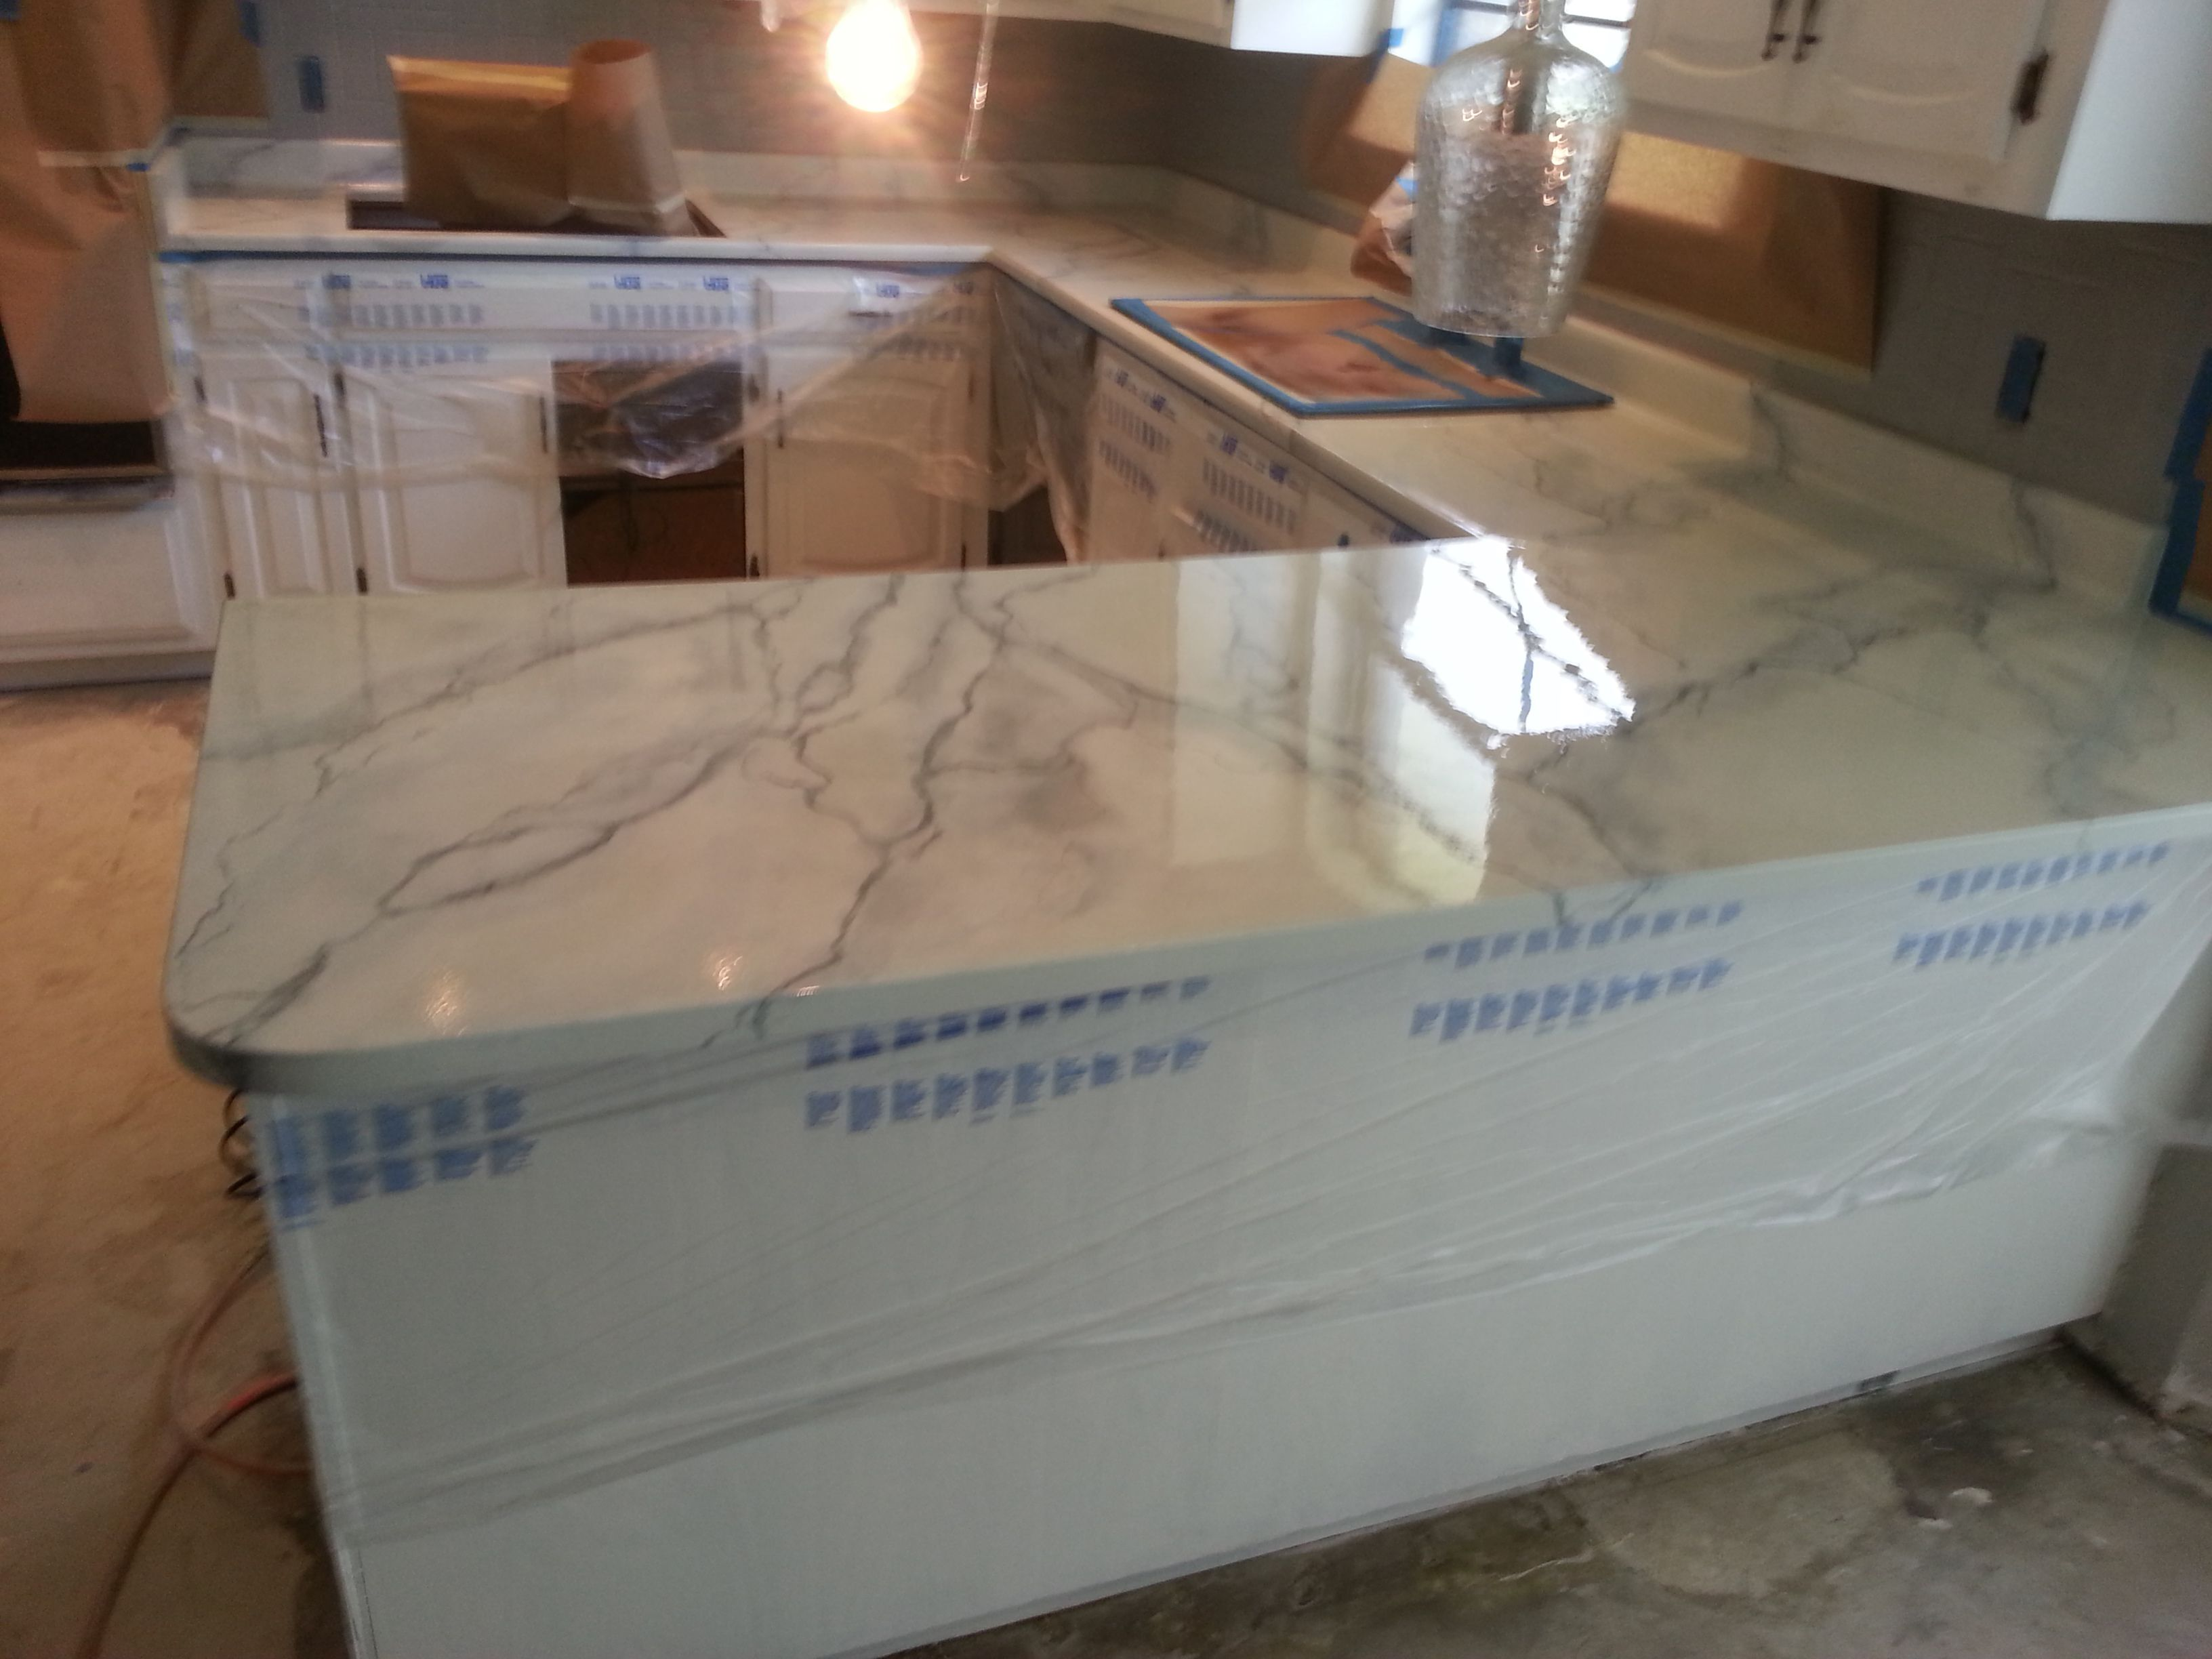 Laminate Counter Tops After Resurfaced To Look Like Carrara Marble